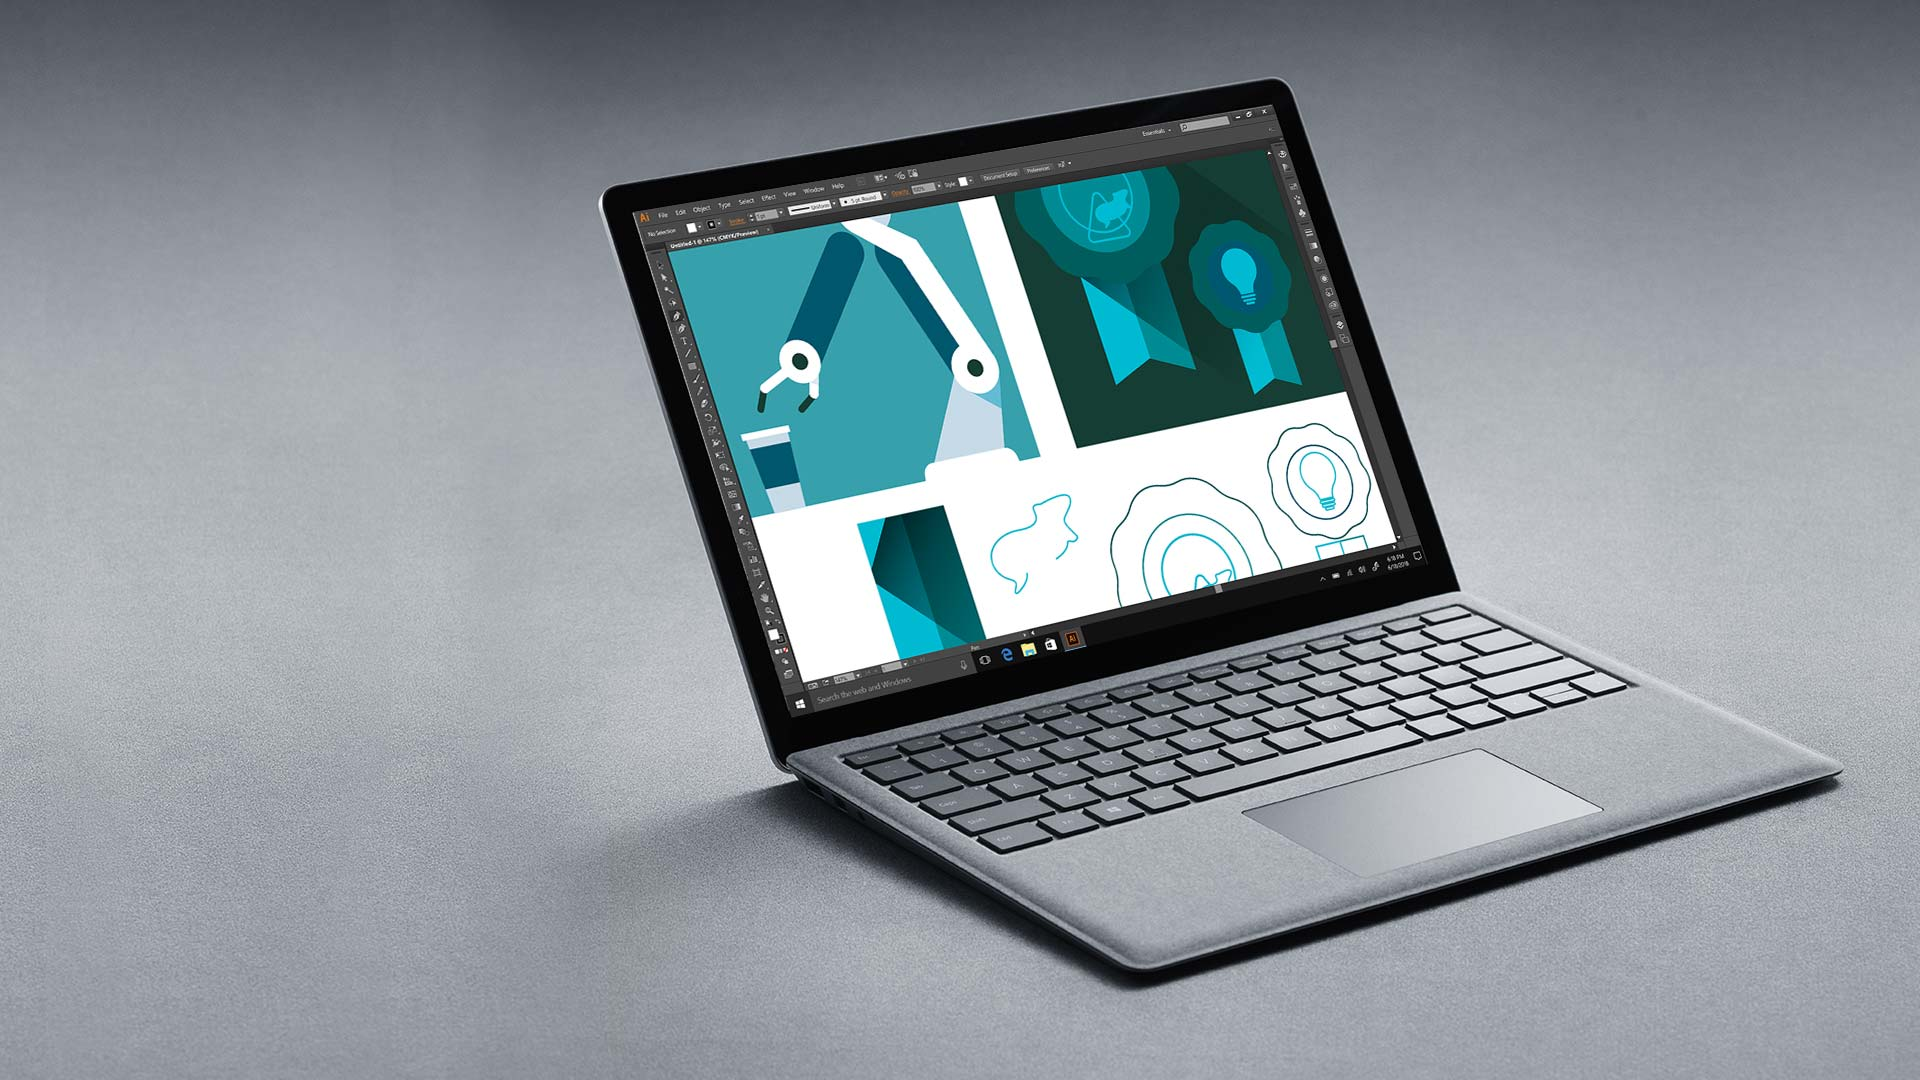 Platinum Surface Laptop with Adobe Photoshop screen.